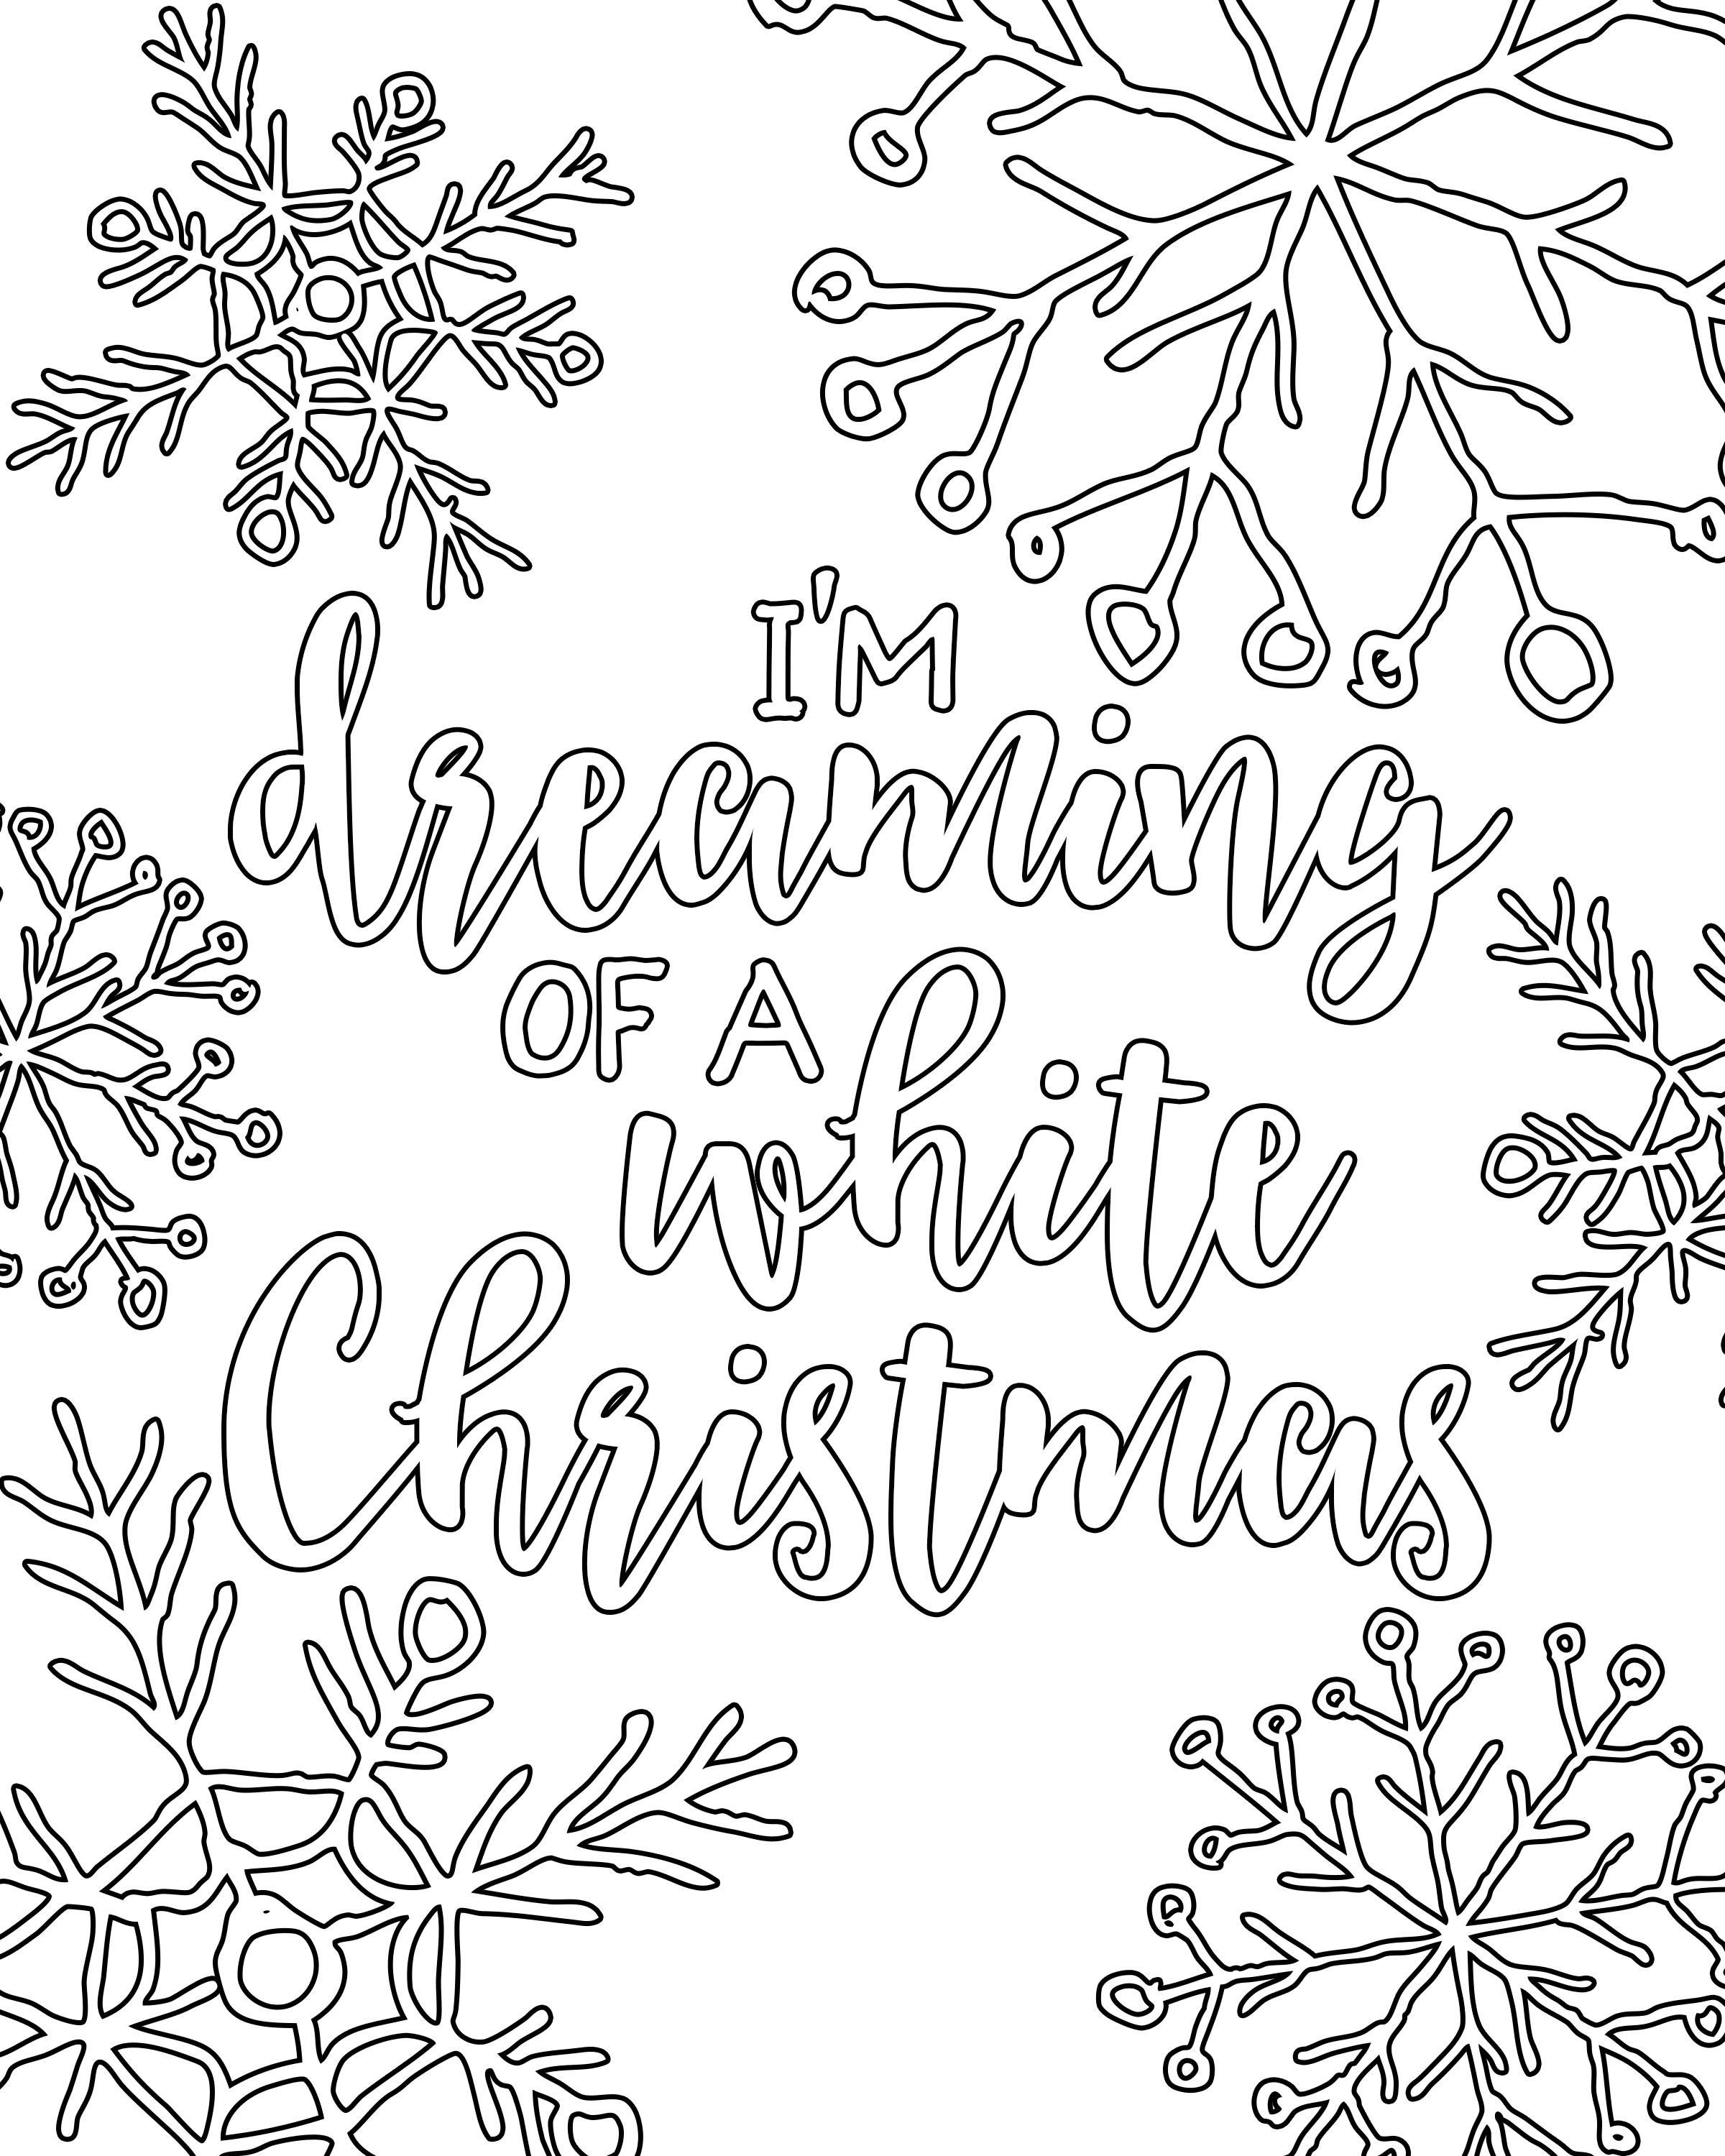 free holiday coloring pages christmas coloring pages best coloring pages for kids pages holiday free coloring